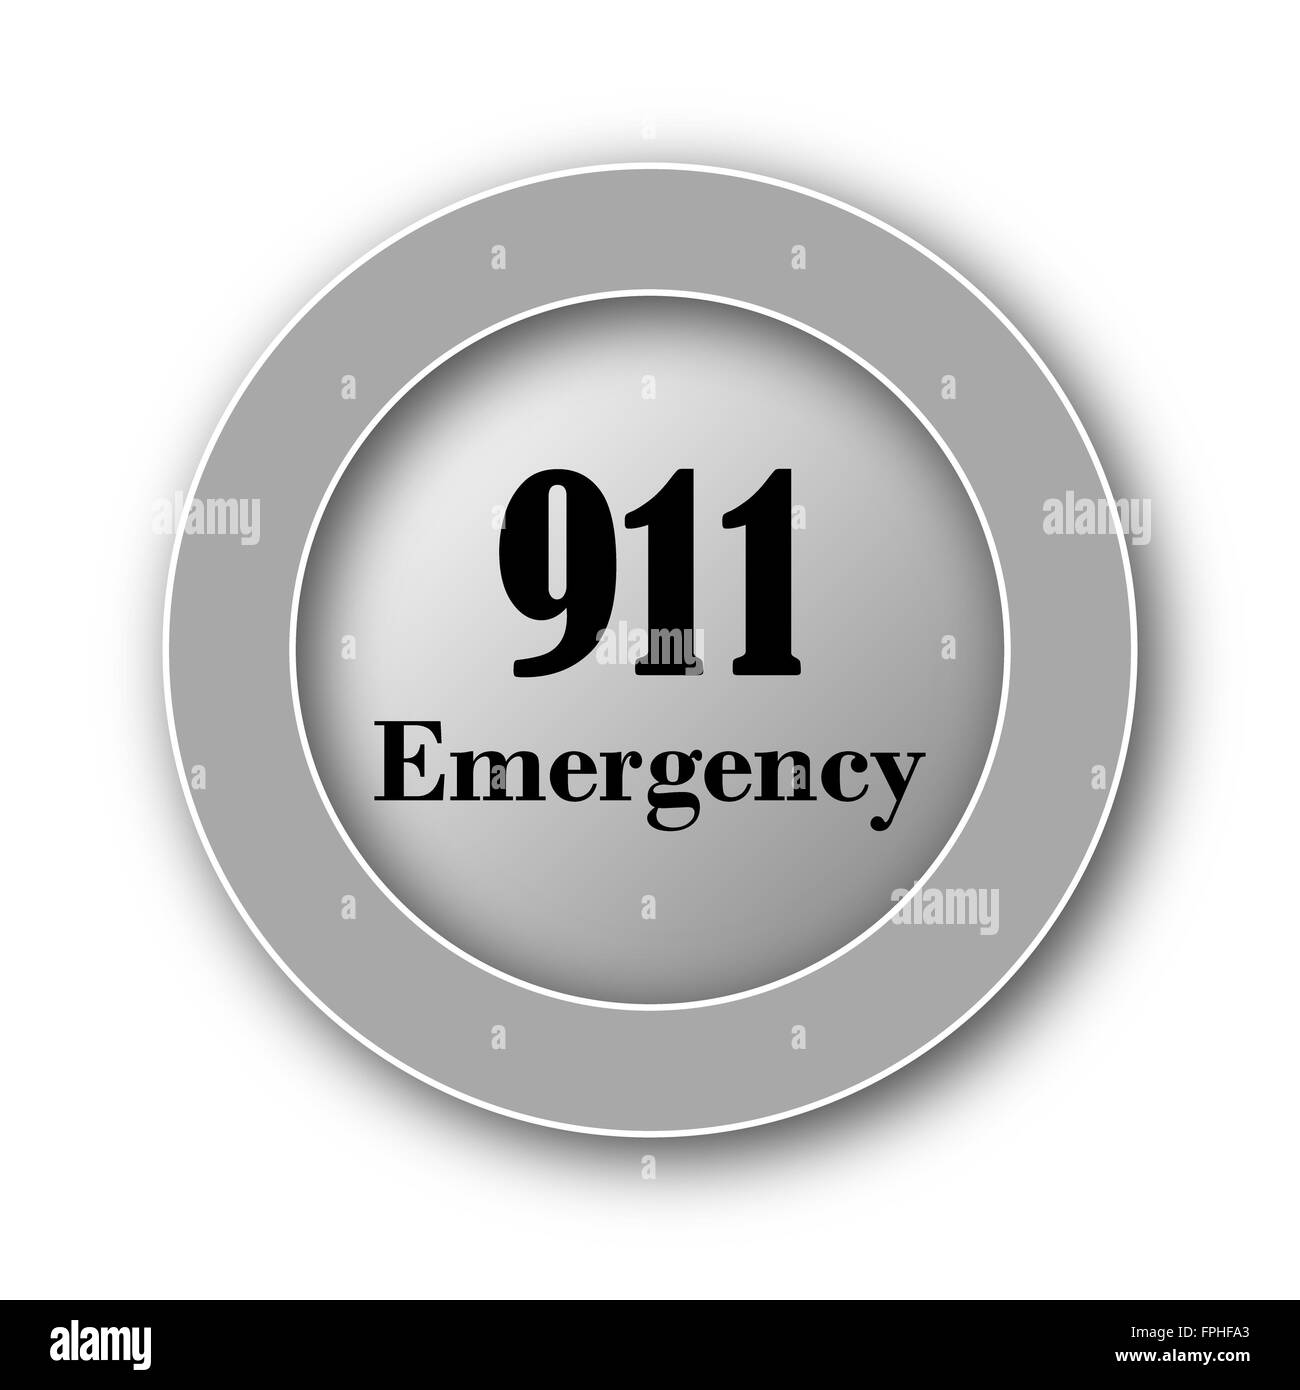 911 Emergency icon. Internet button on white background. - Stock Image